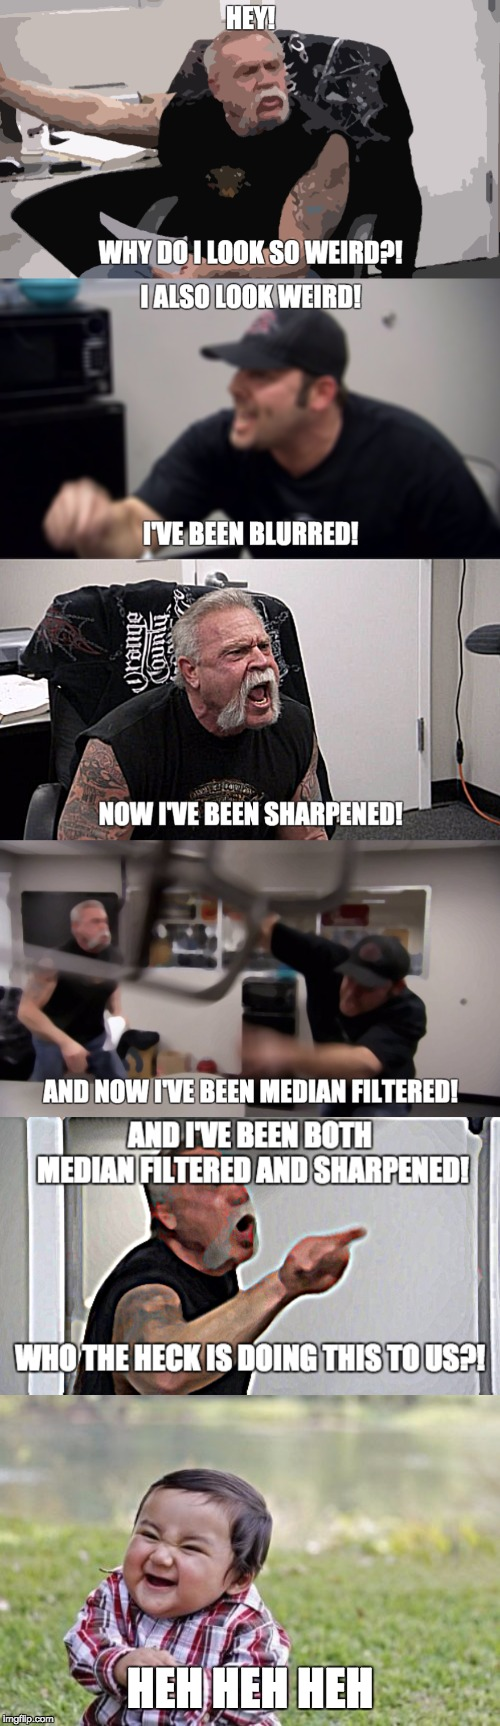 Read to the end. You won't regret it. | HEH HEH HEH | image tagged in memes,evil toddler,american chopper argument,funny,meme,funny memes | made w/ Imgflip meme maker